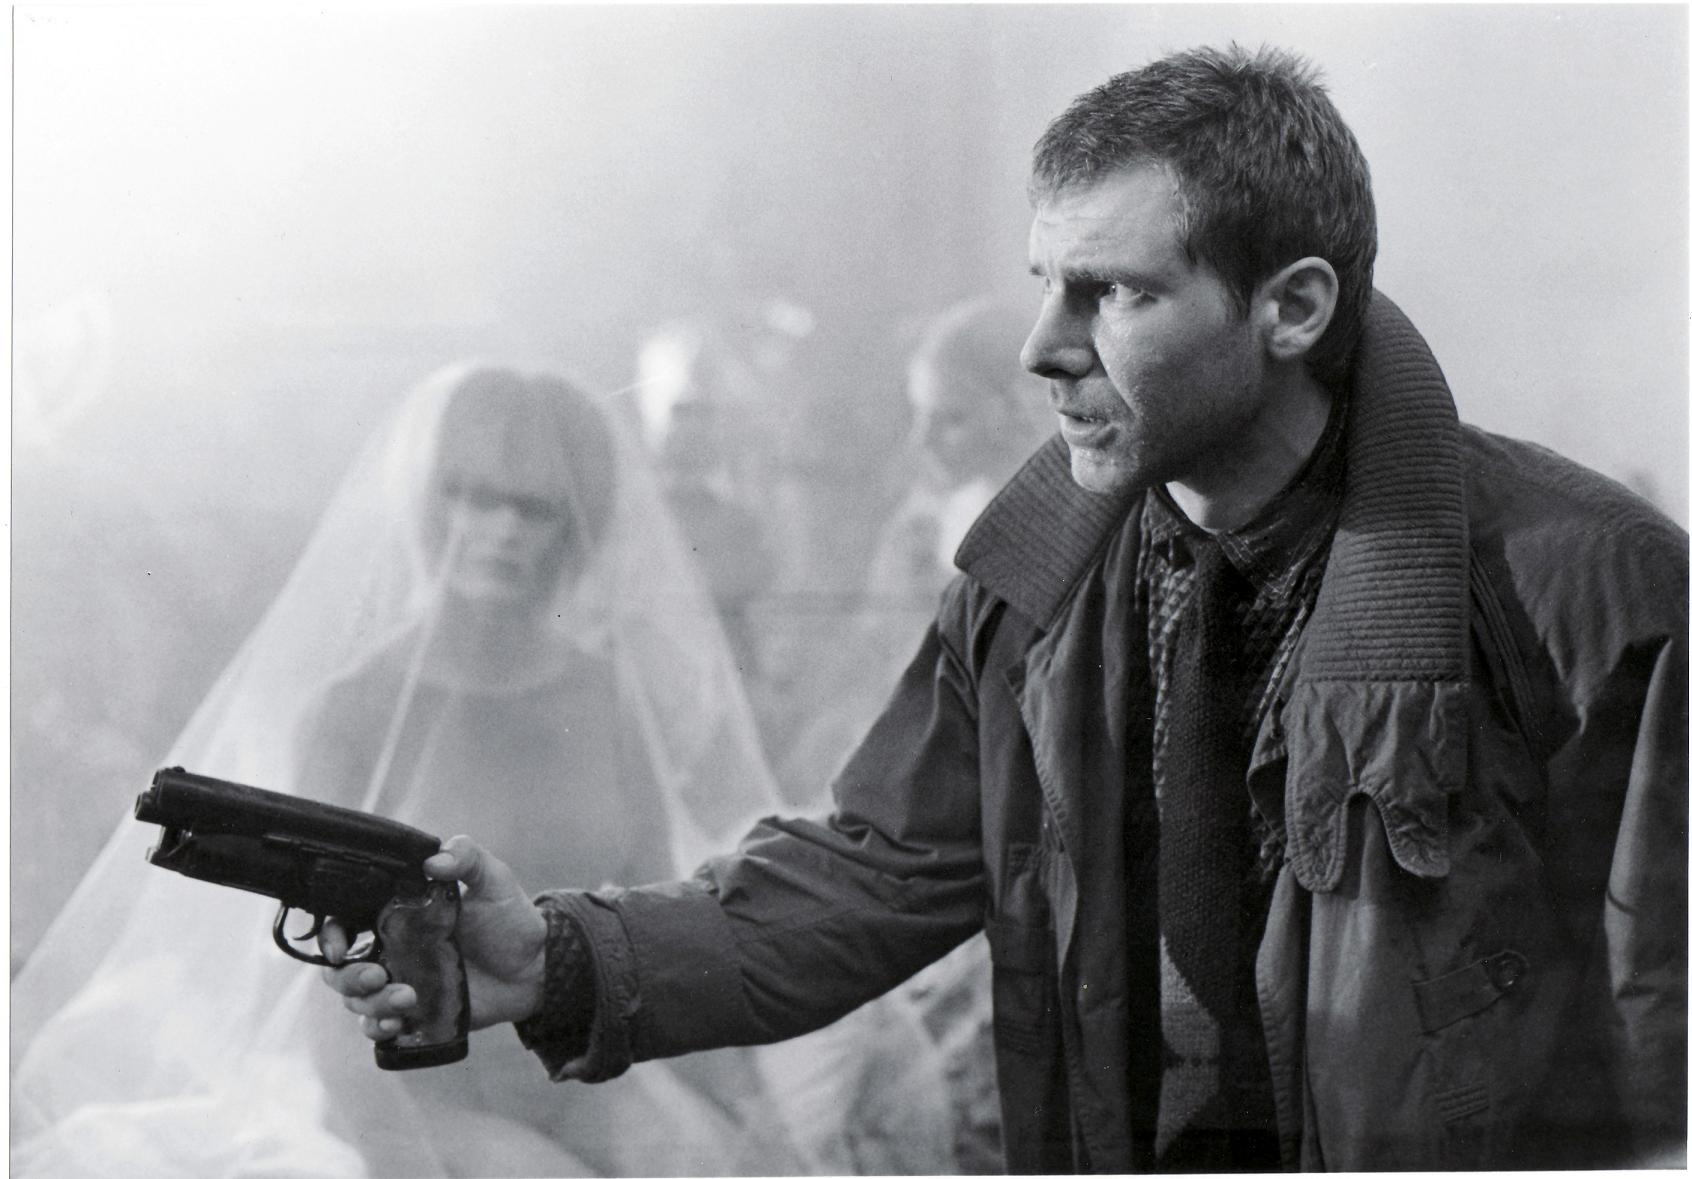 harrison ford to reprise role as deckard in  u0026 39 blade runner